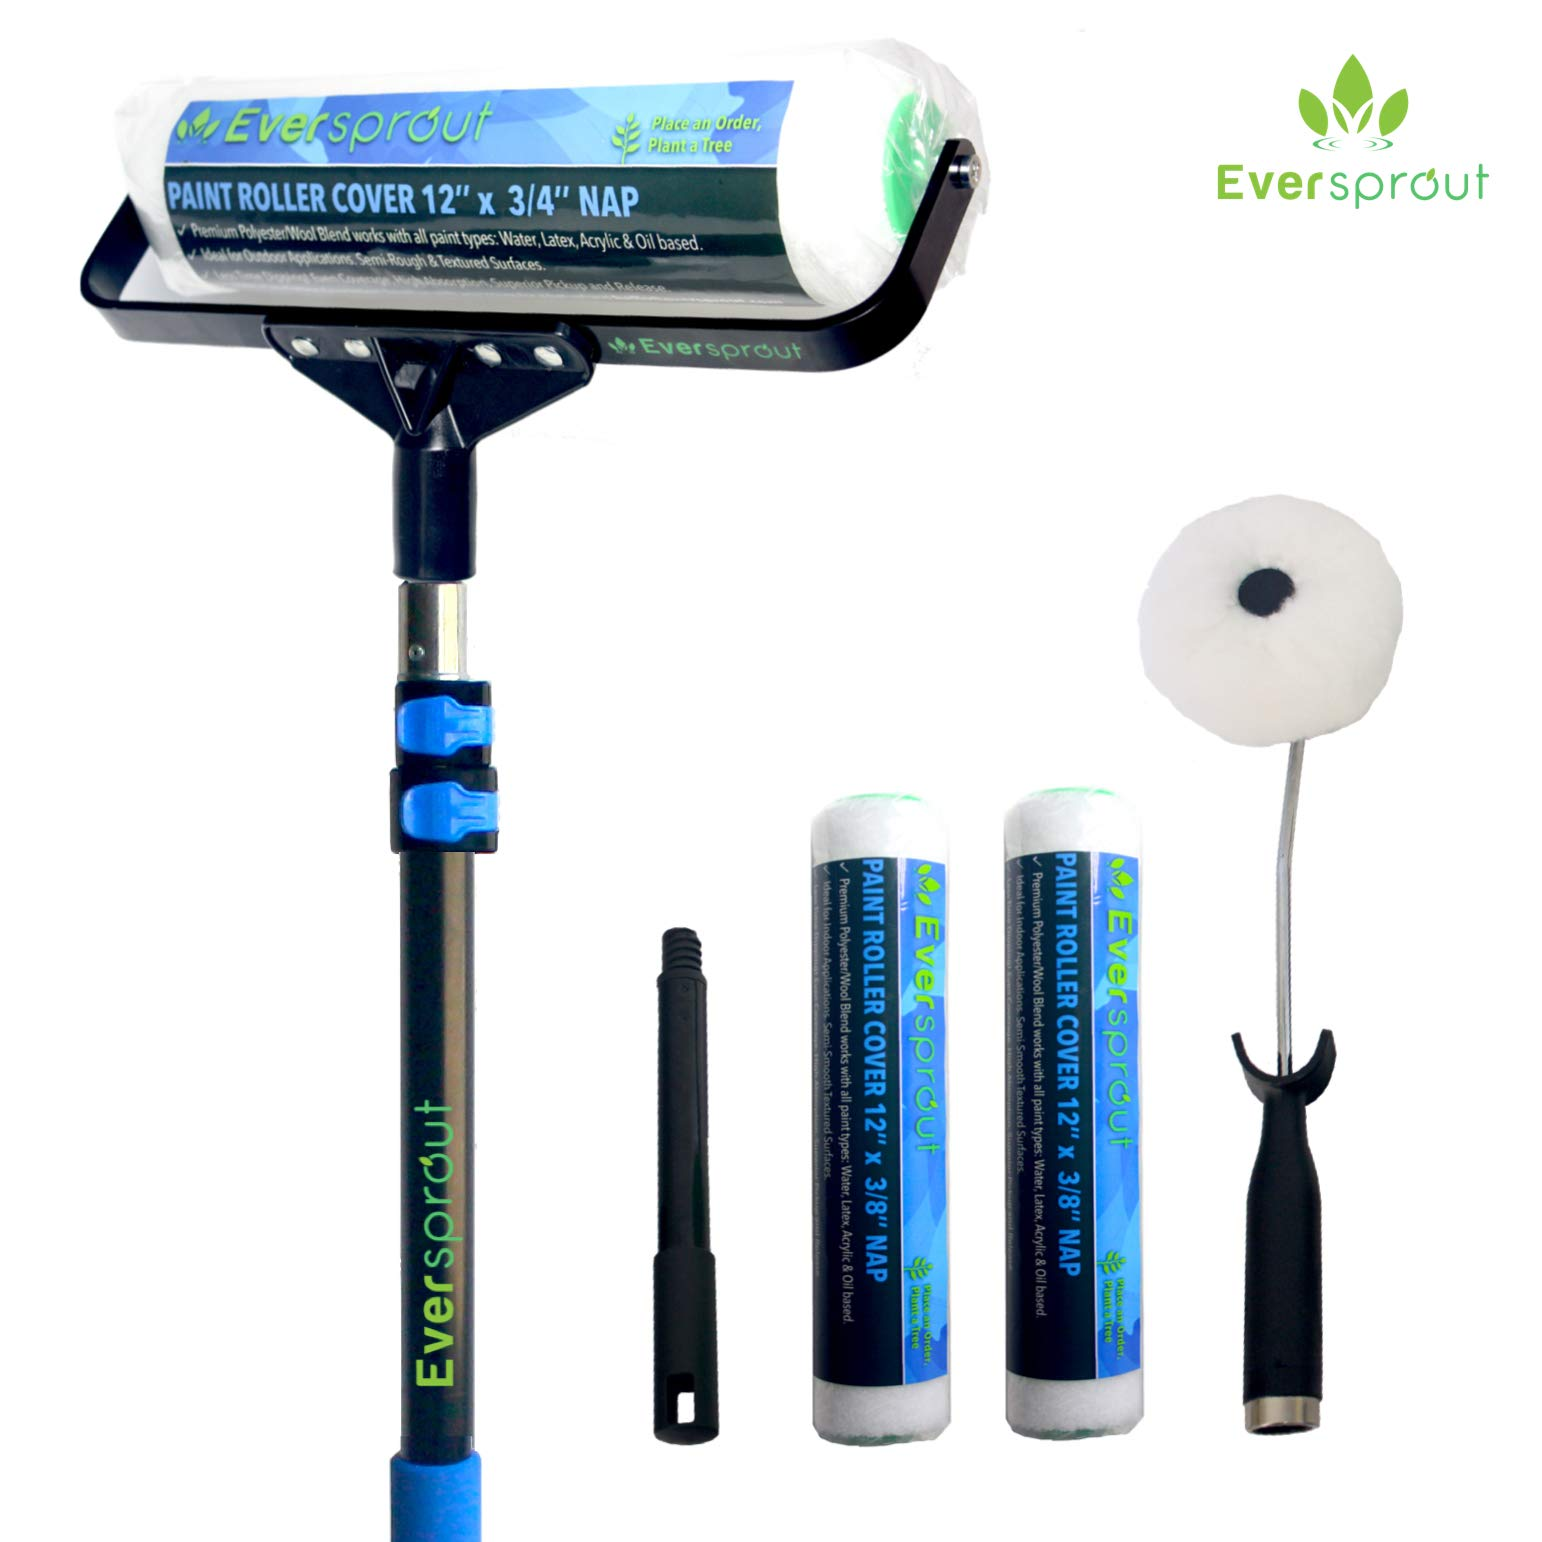 EVERSPROUT 1.5-to-3.5 Foot Paint Roller Kit (8-10 Ft Standing Reach)   Extra Wide 12-inch Roller Frame, Corner Roller Brush, Extension Pole, 2x Poly-Wool Roller Covers Indoor/Outdoor   All Paint Types